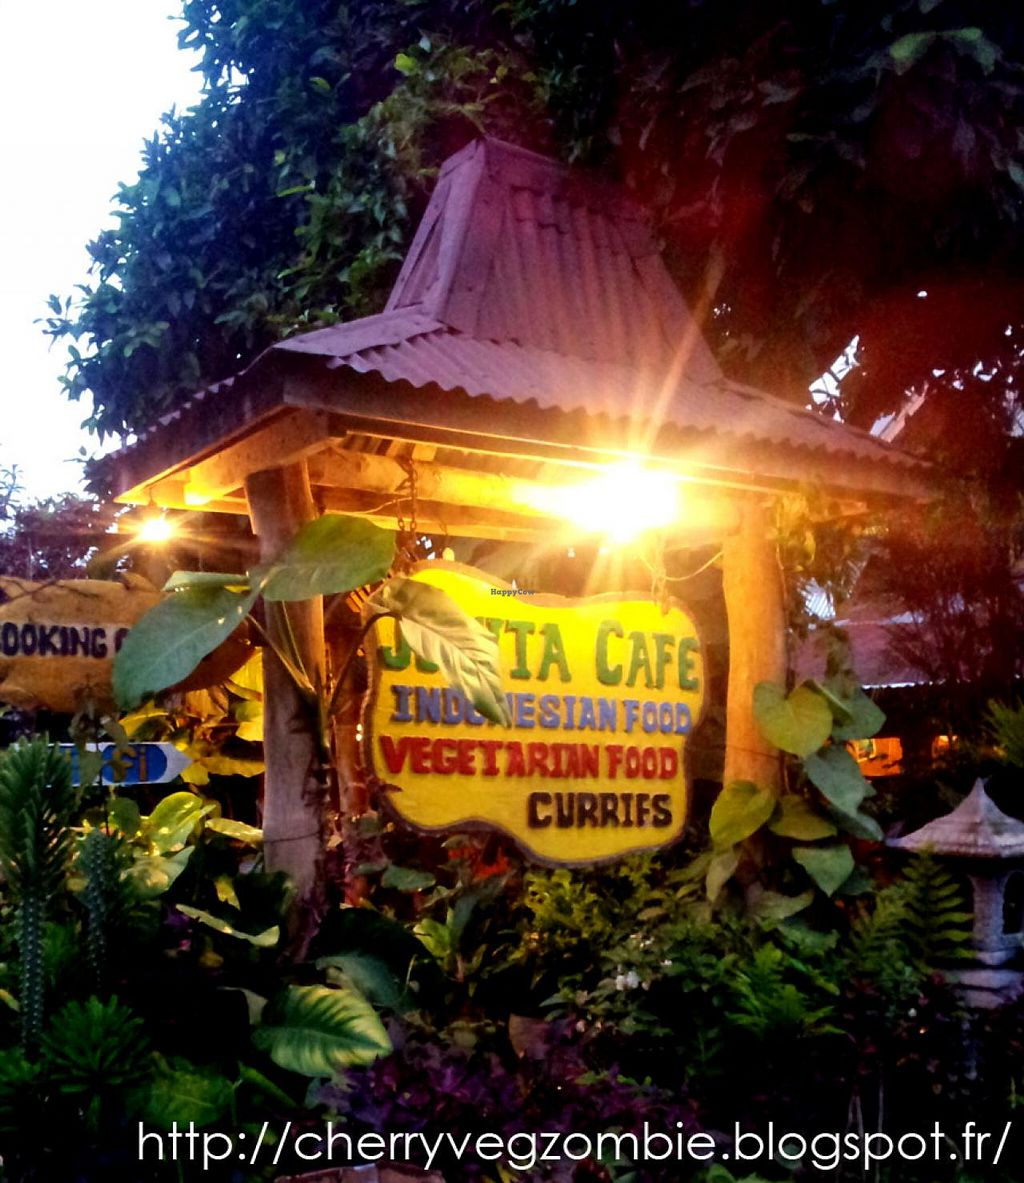 "Photo of Juwita Cafe  by <a href=""/members/profile/CherryFlamingo"">CherryFlamingo</a> <br/>Vg Friendly <br/> January 9, 2014  - <a href='/contact/abuse/image/37137/62176'>Report</a>"